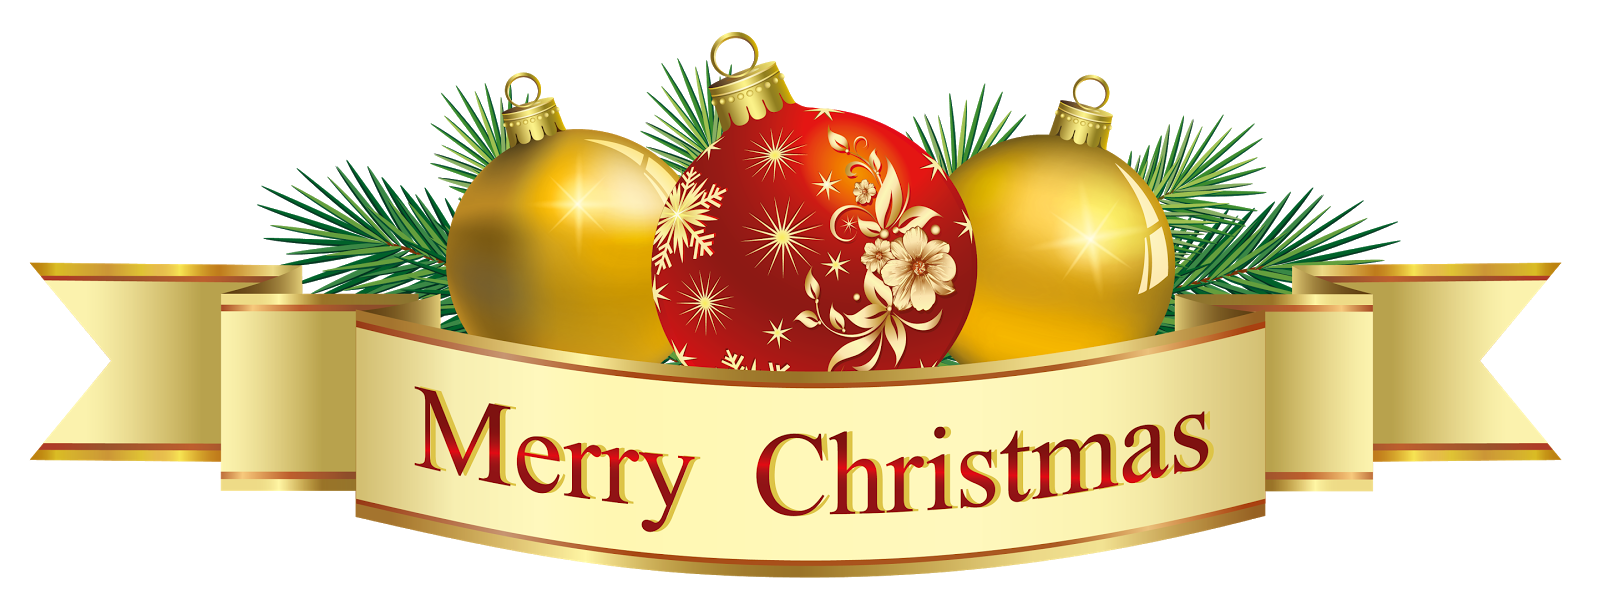 2017 clipart christmas. Latest top merry clip